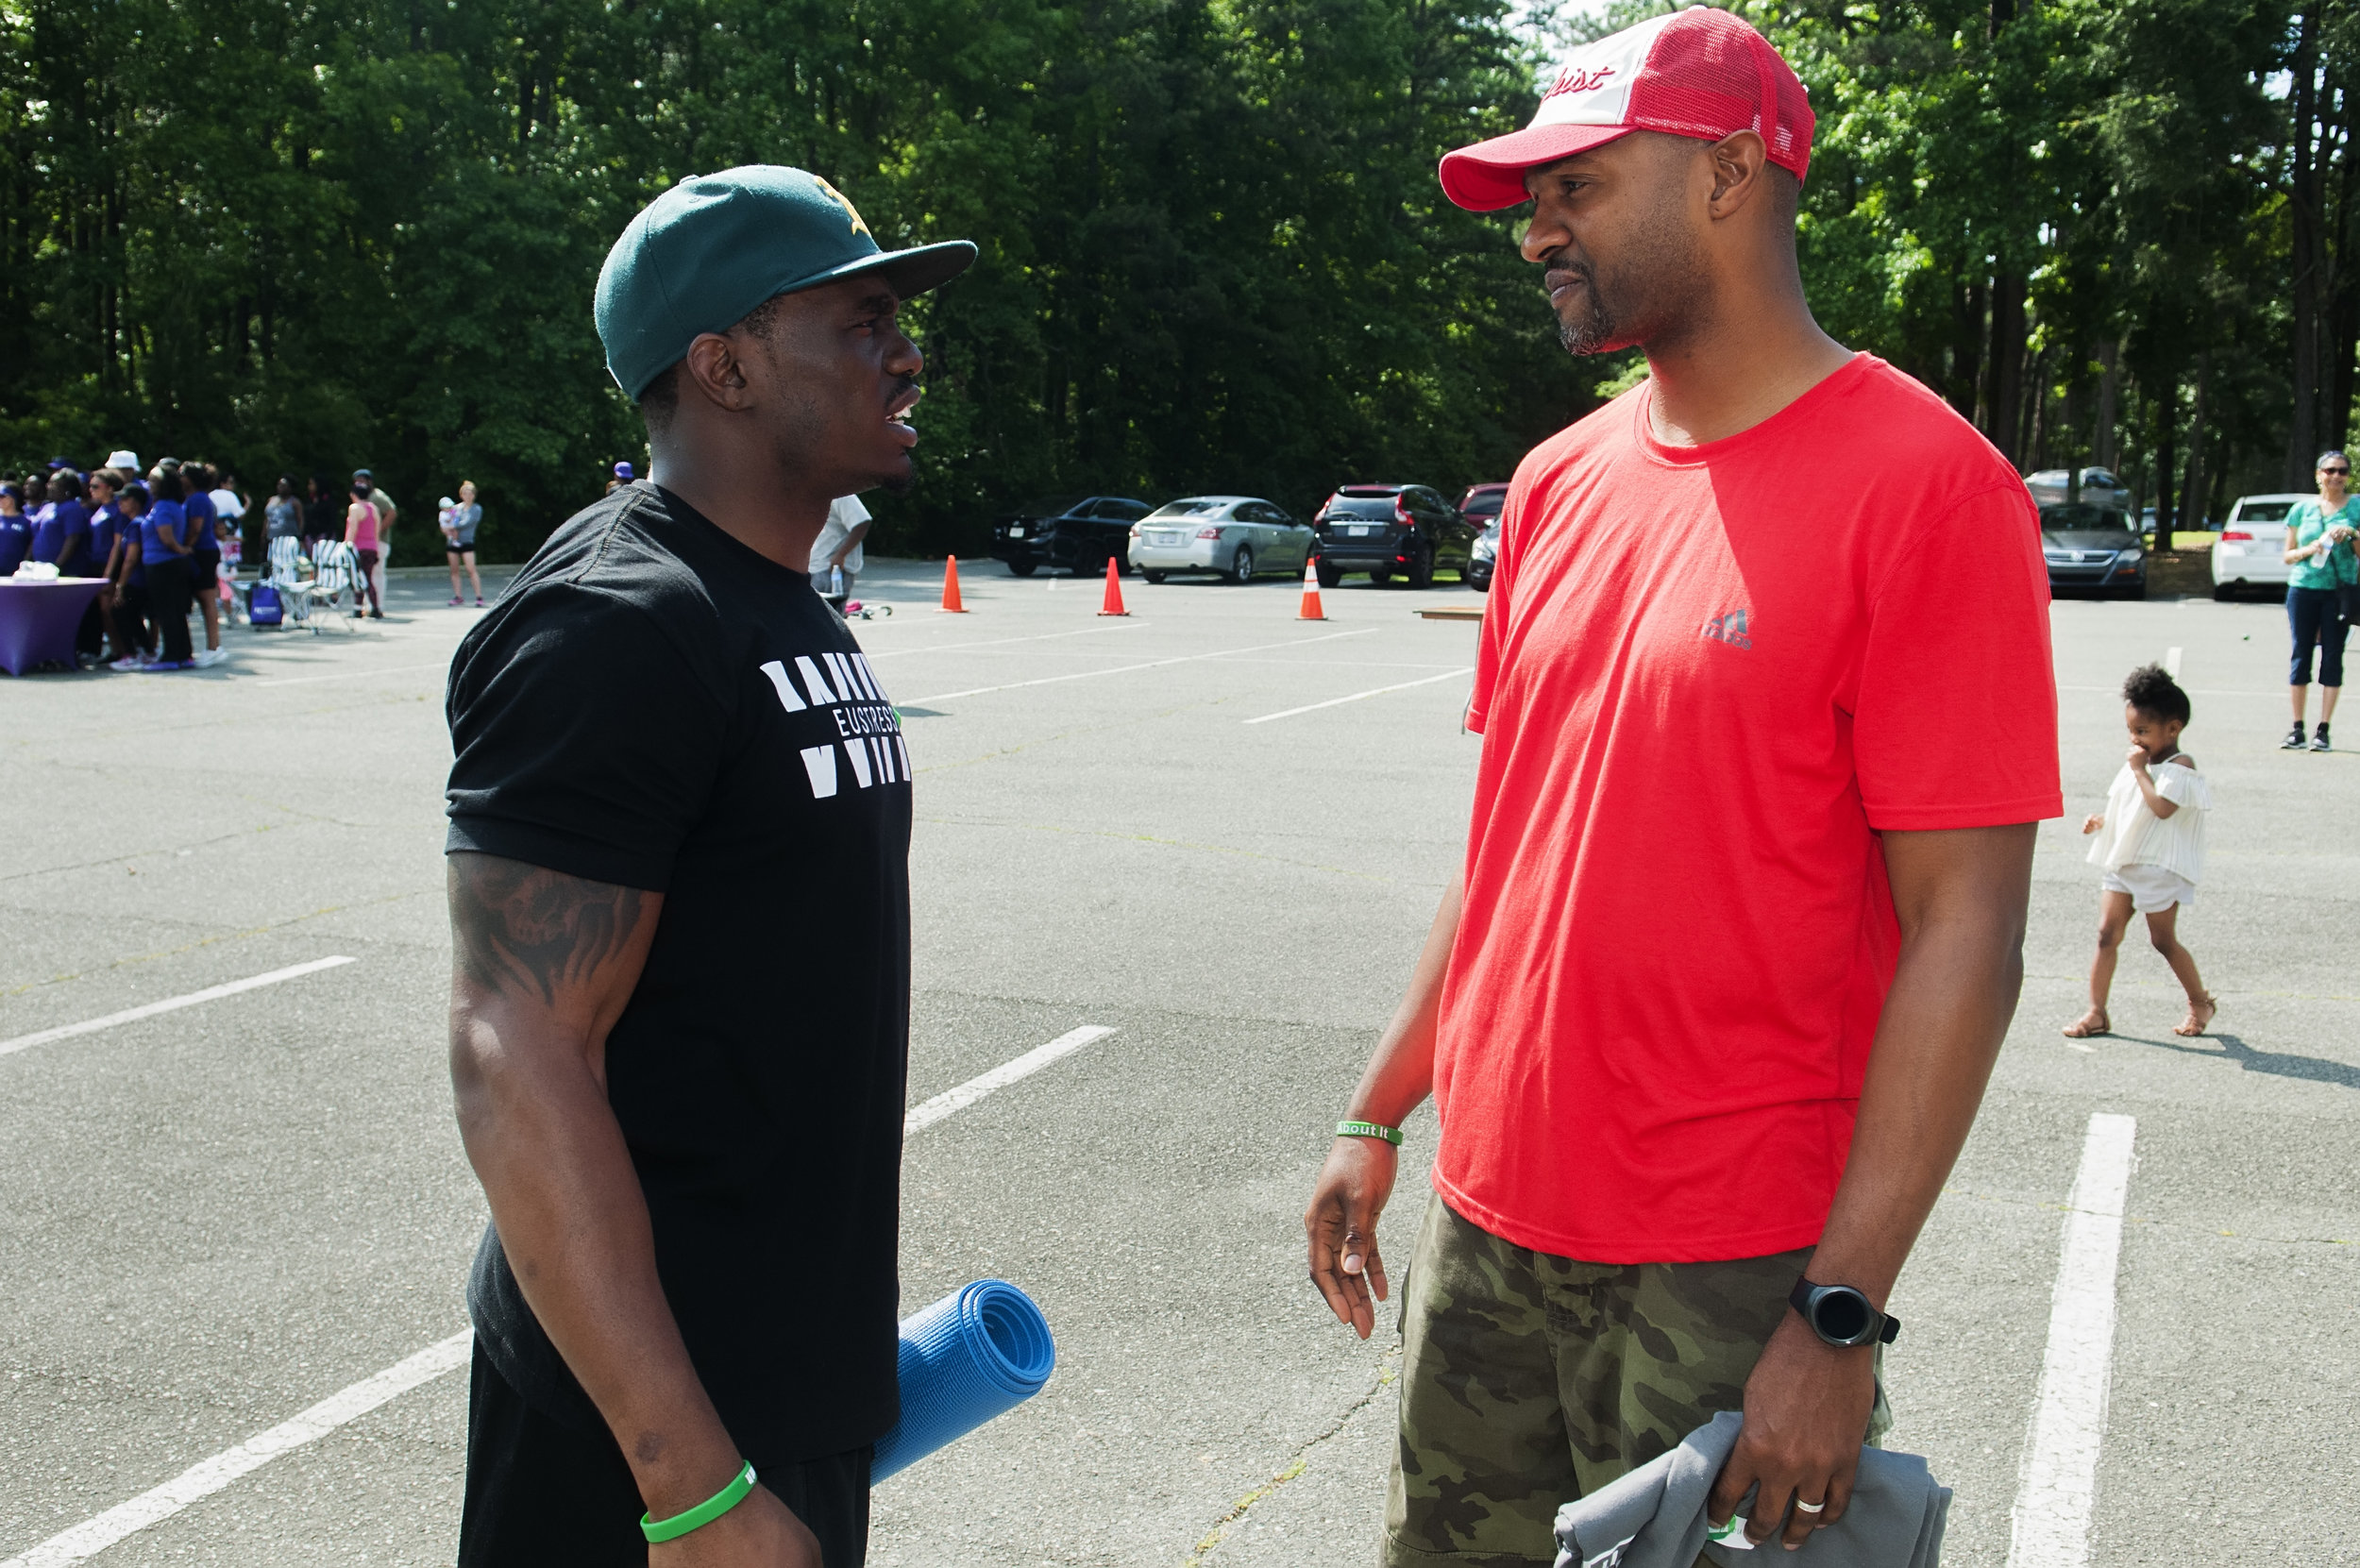 2nd Annual Let's Talk About It Mental Health Awareness Walk @ Park Rd Park 5-20-17 by Jon Strayhorn 080.jpg